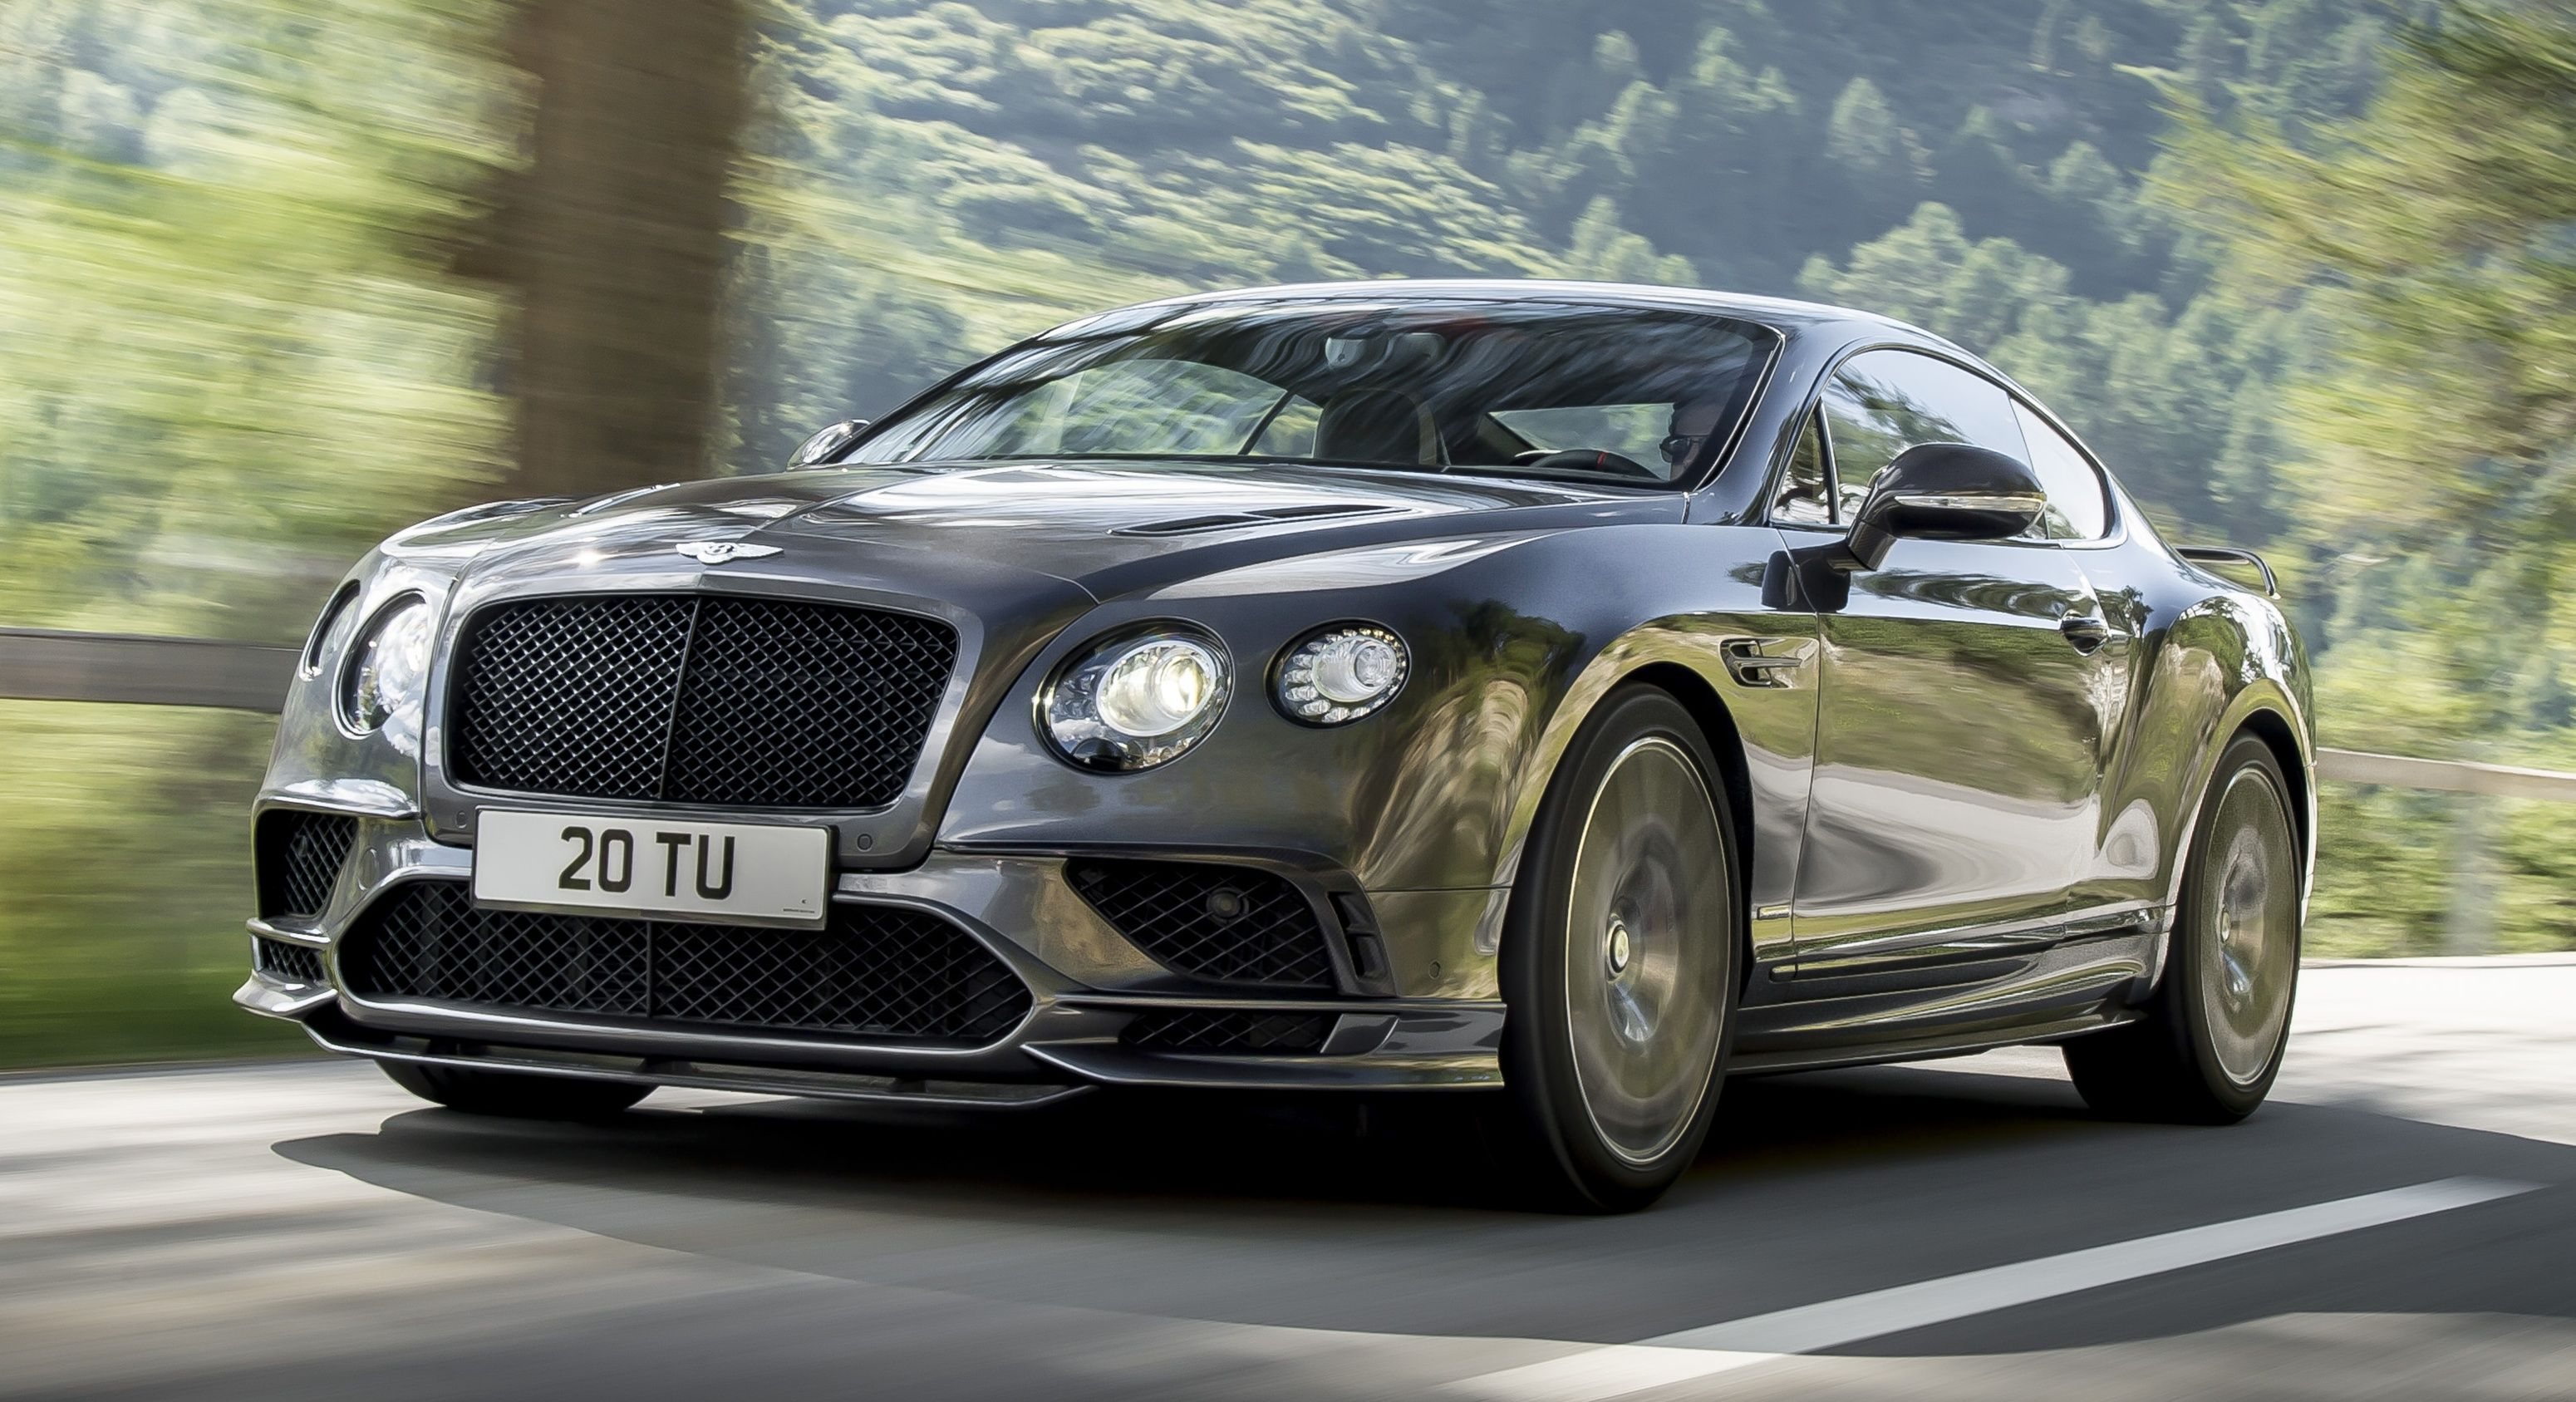 convertible flickr gt new wikipedia continental bentley a pr alexandre supersport wiki of cost